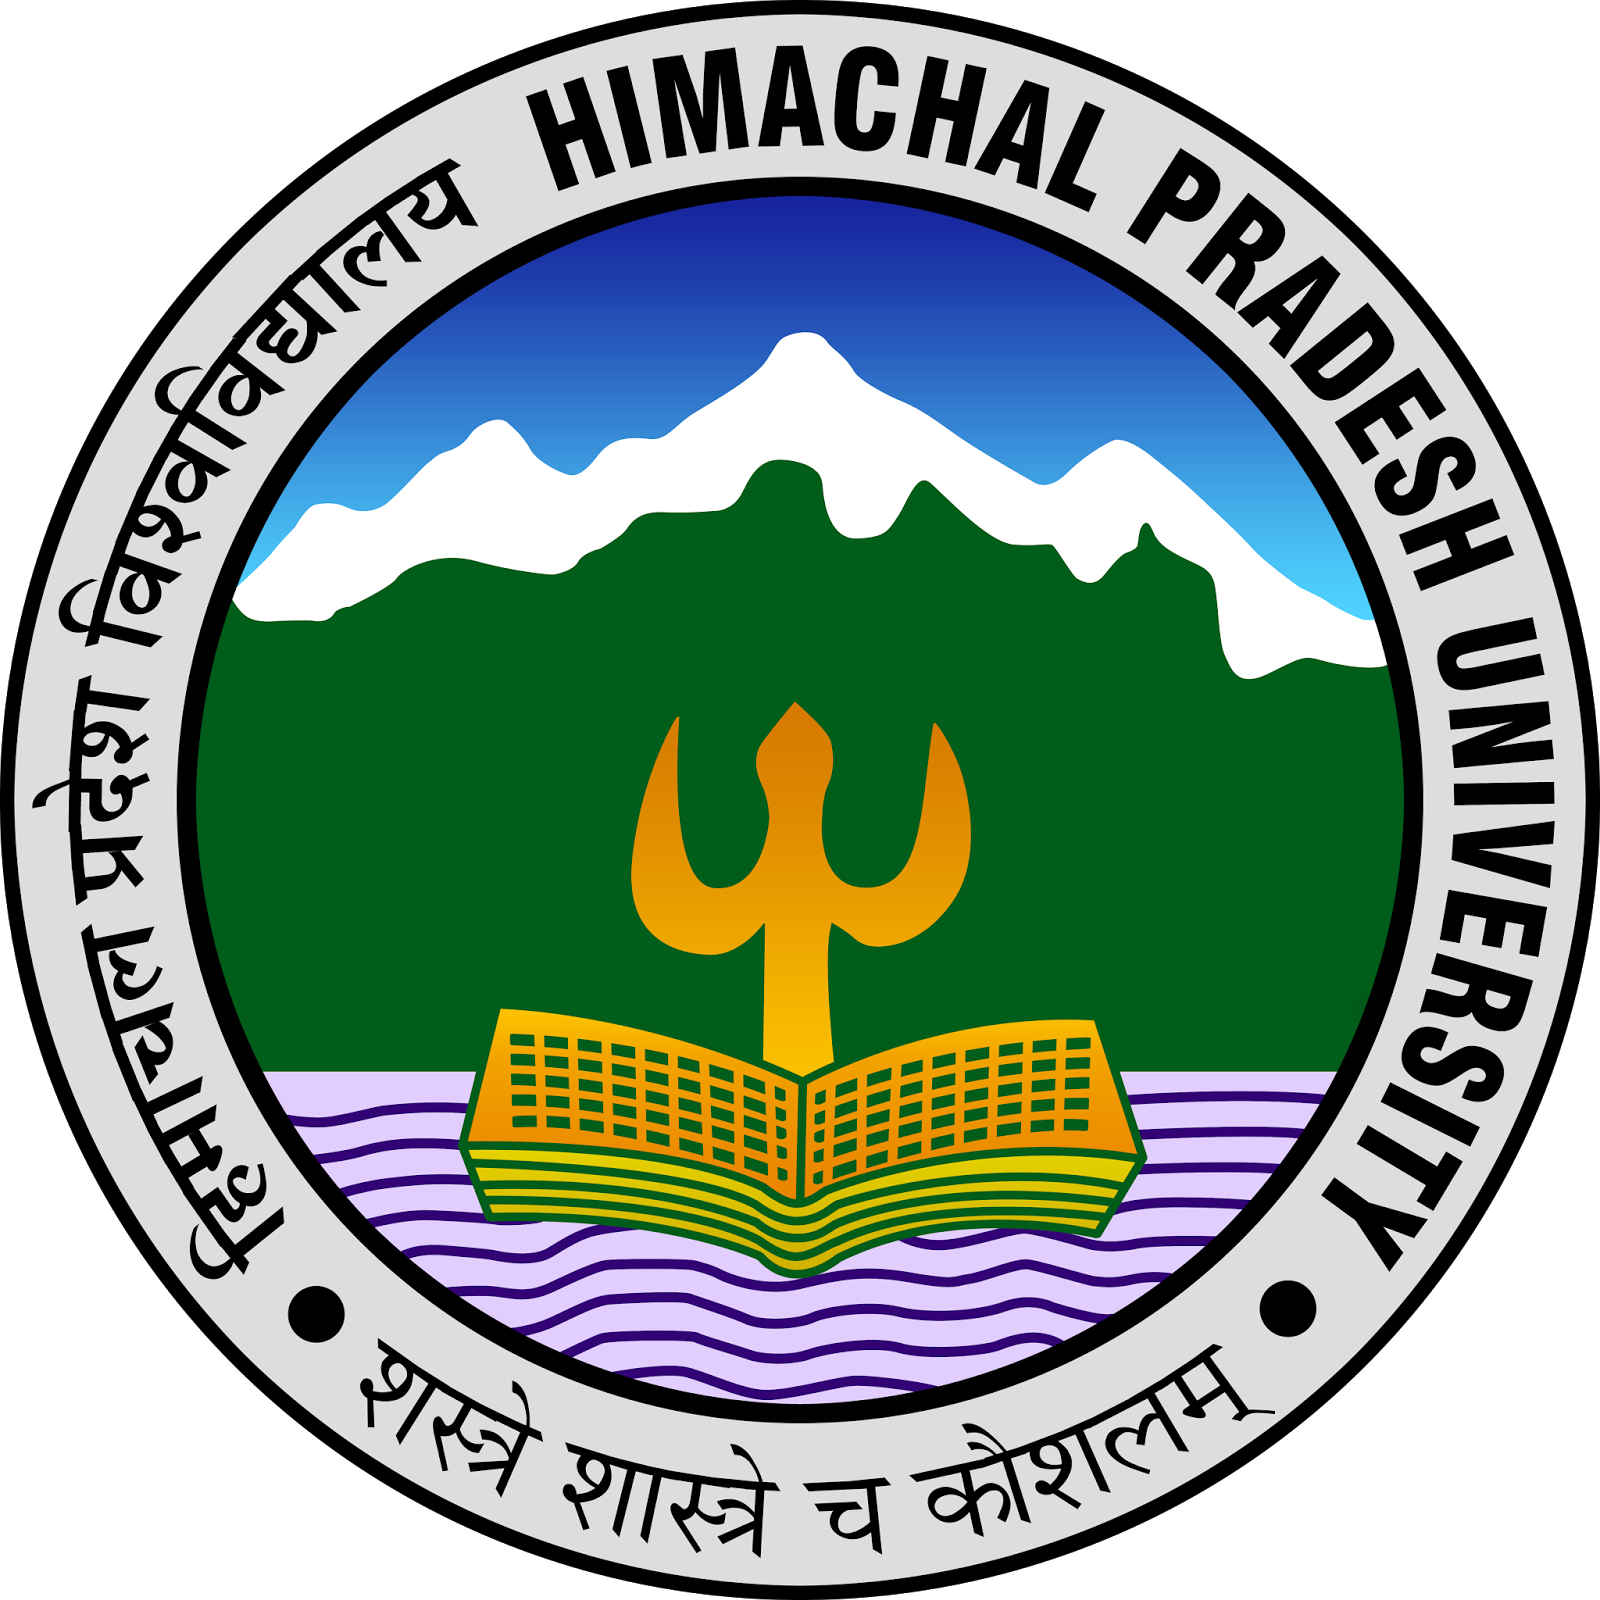 Image result for himachal pradesh university logo